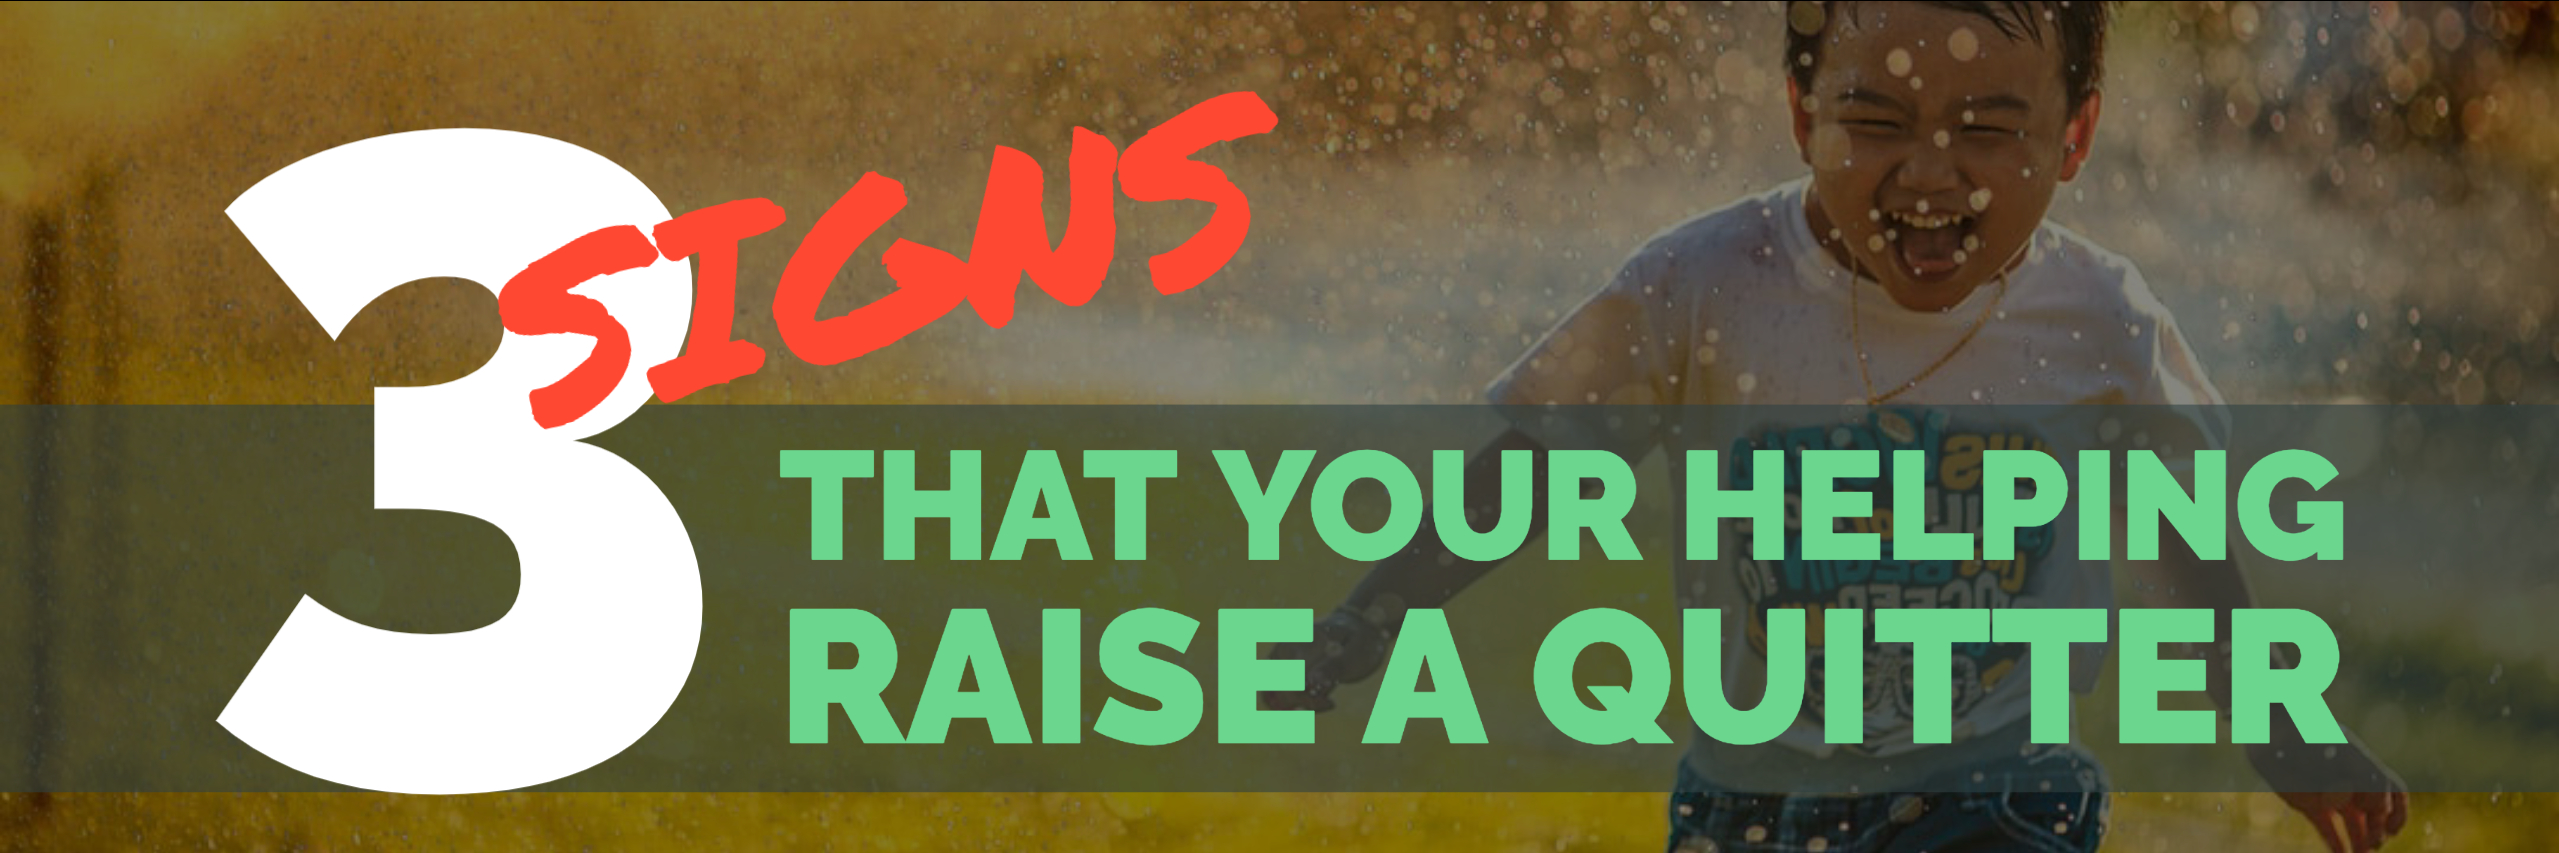 3 Signs You Are Raising a quitter paul argueta motivaitonal speaker parenting tips parenting advice leadership skills